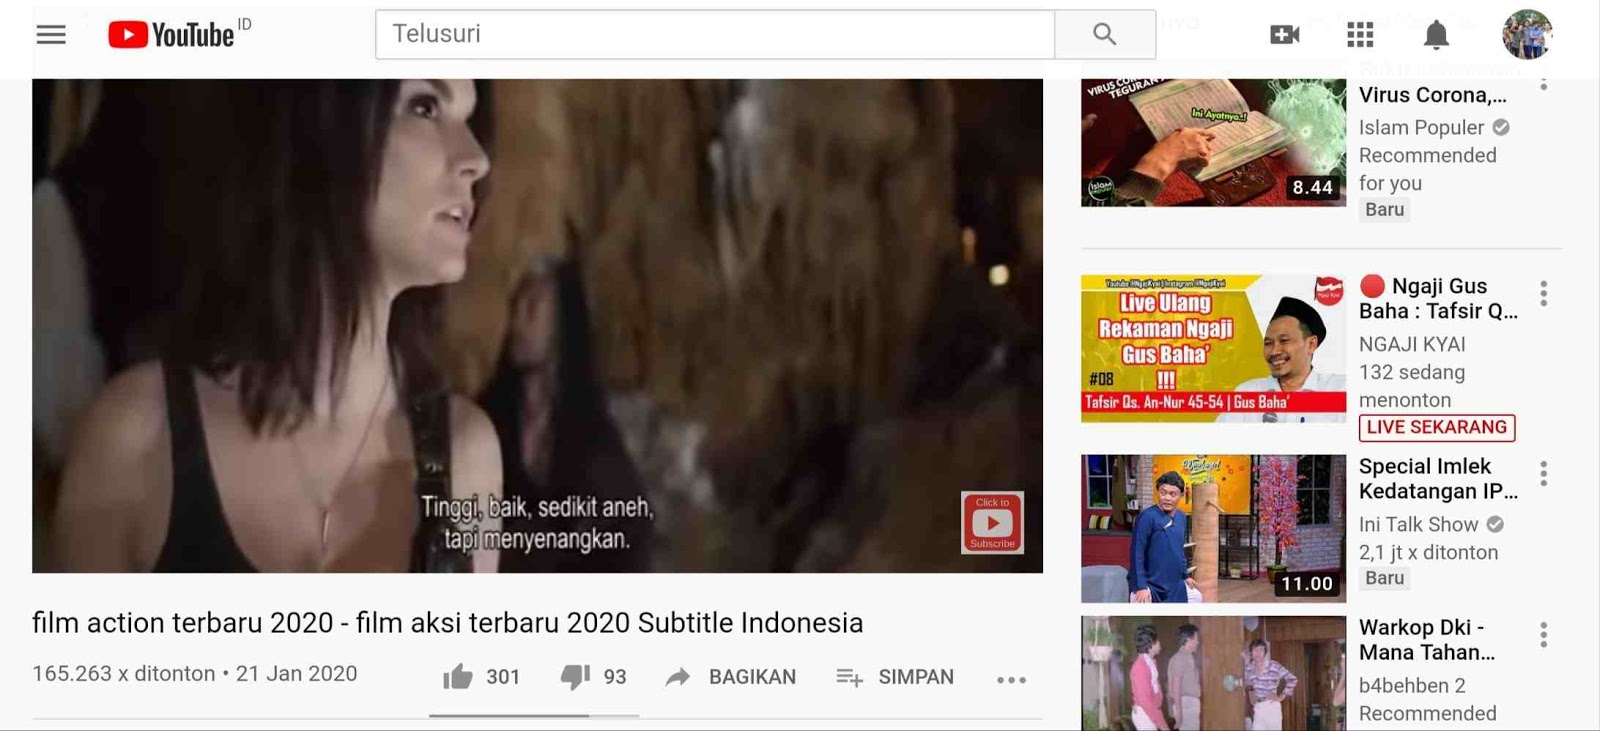 Cara Download Subtitle CC Video dari YouTube Format .srt / .txt